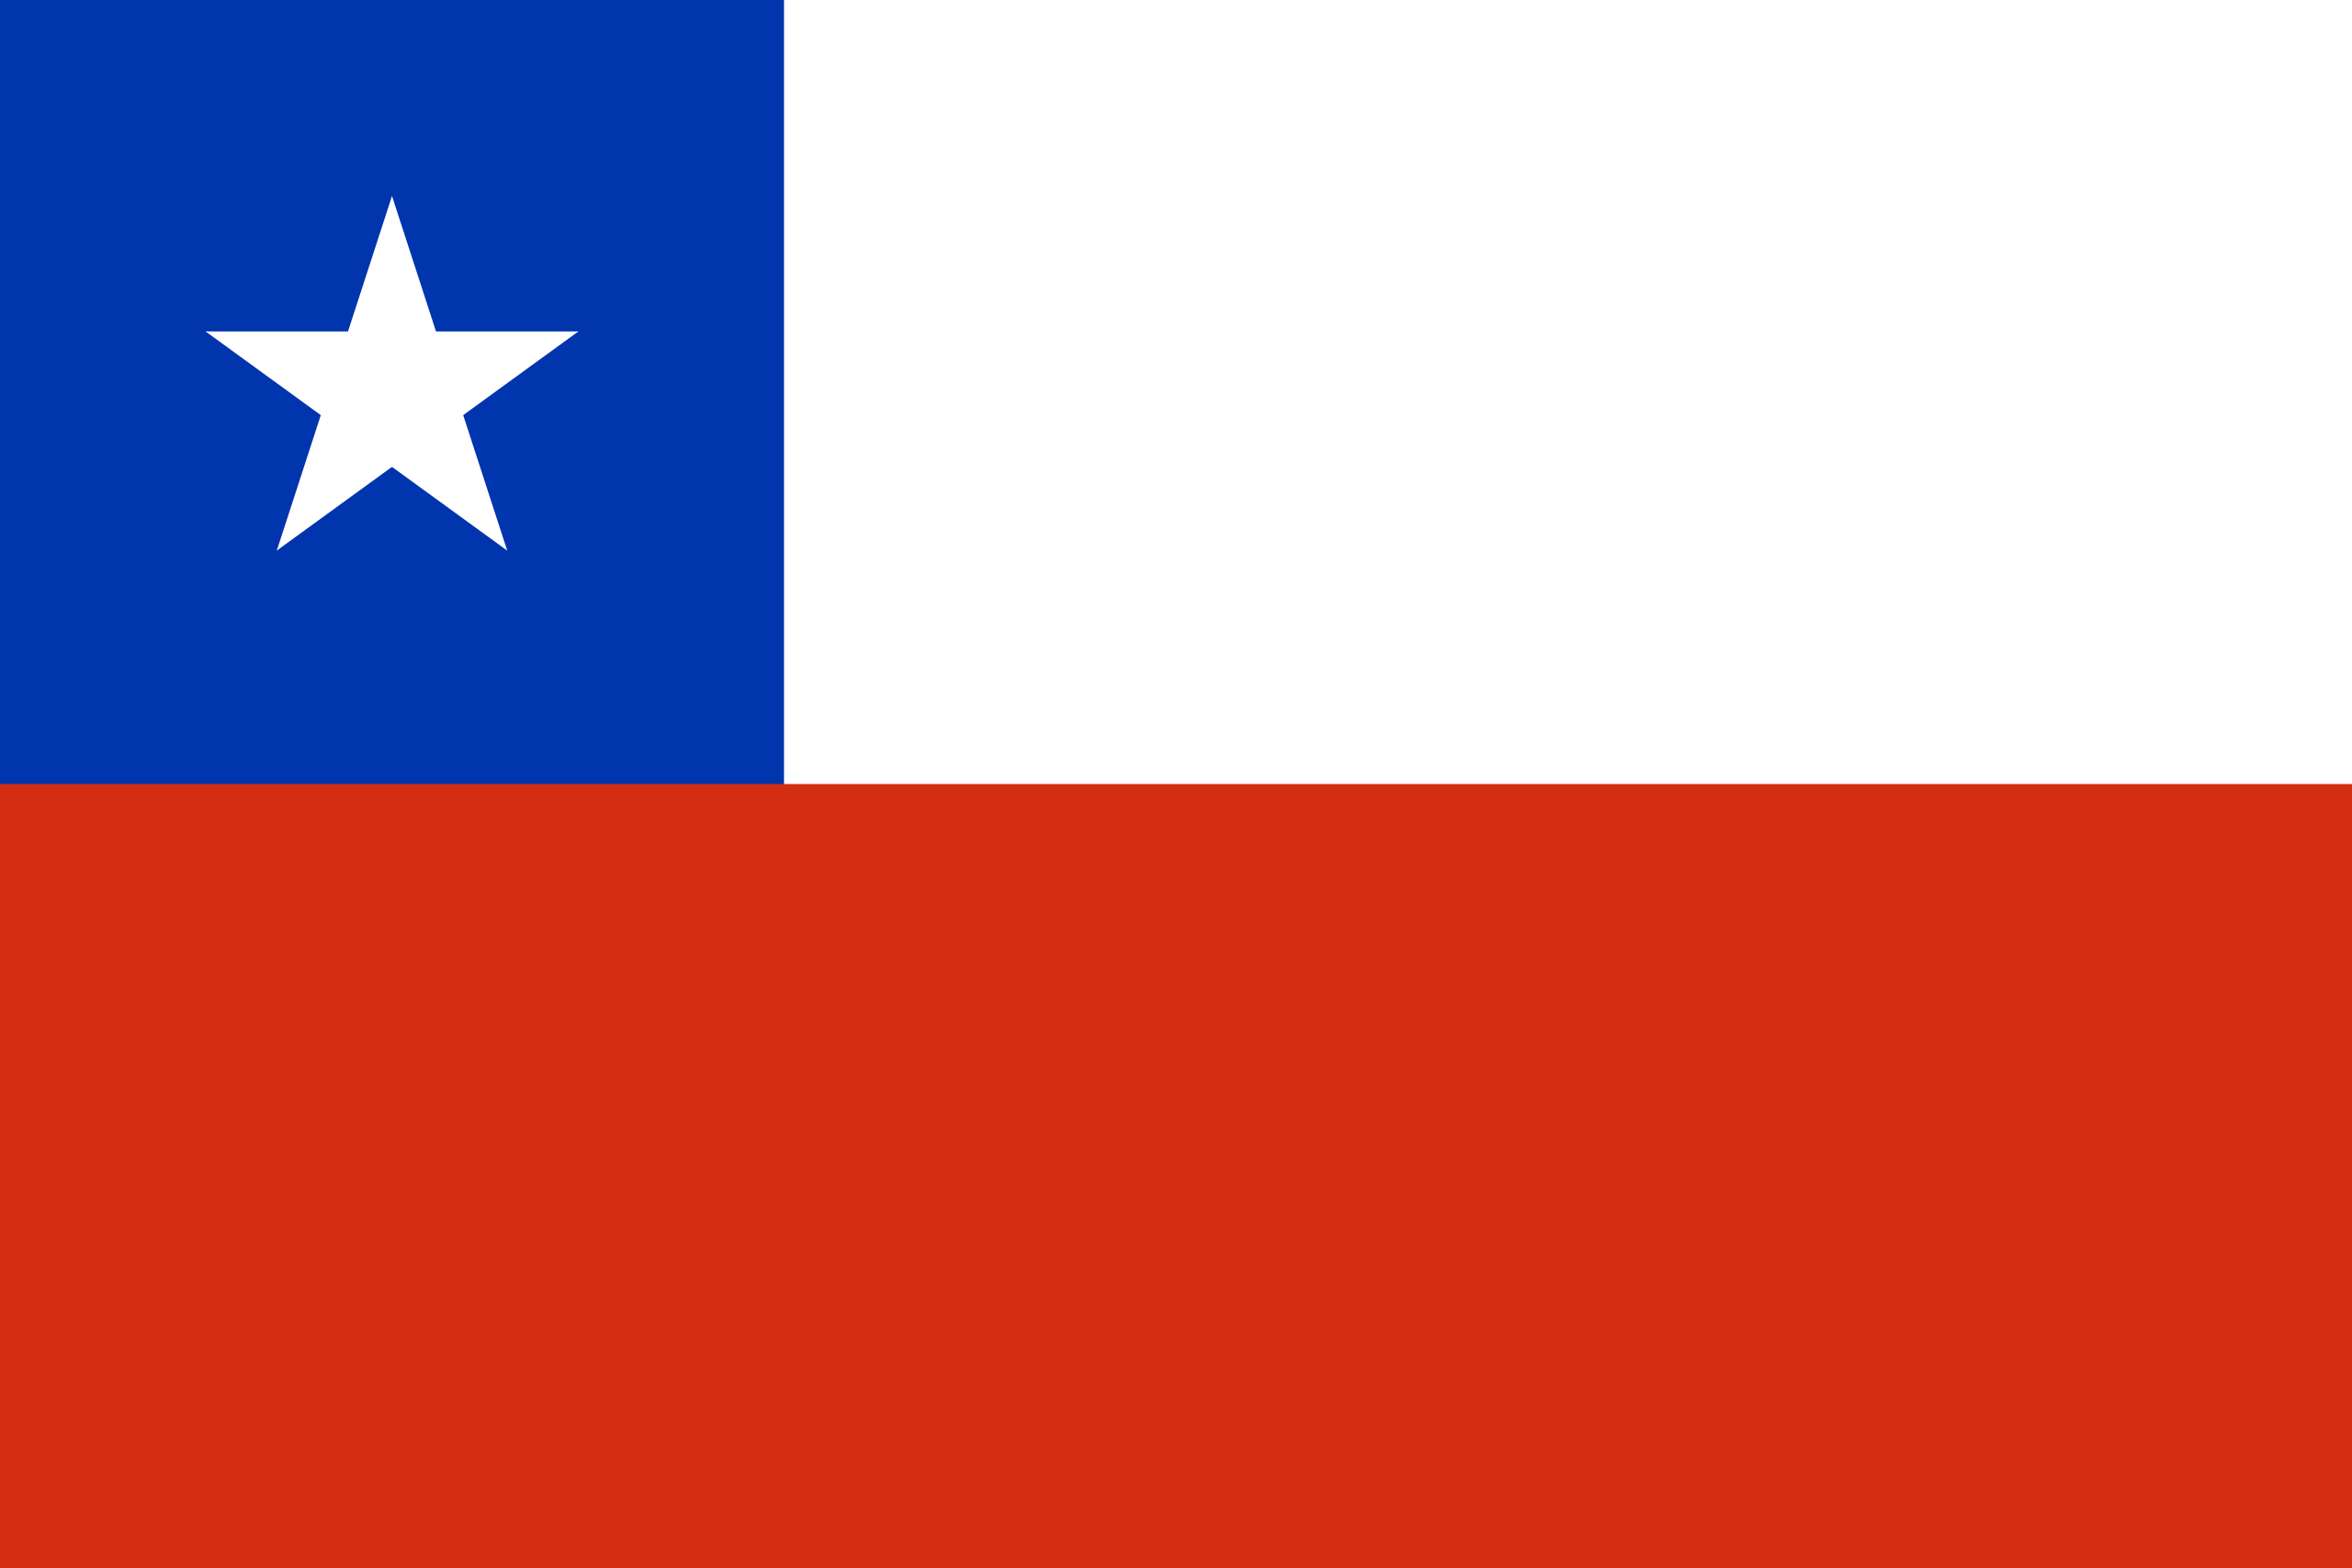 Chile, Land, Emblem, Logo, Symbol - Wallpaper HD - Prof.-falken.com